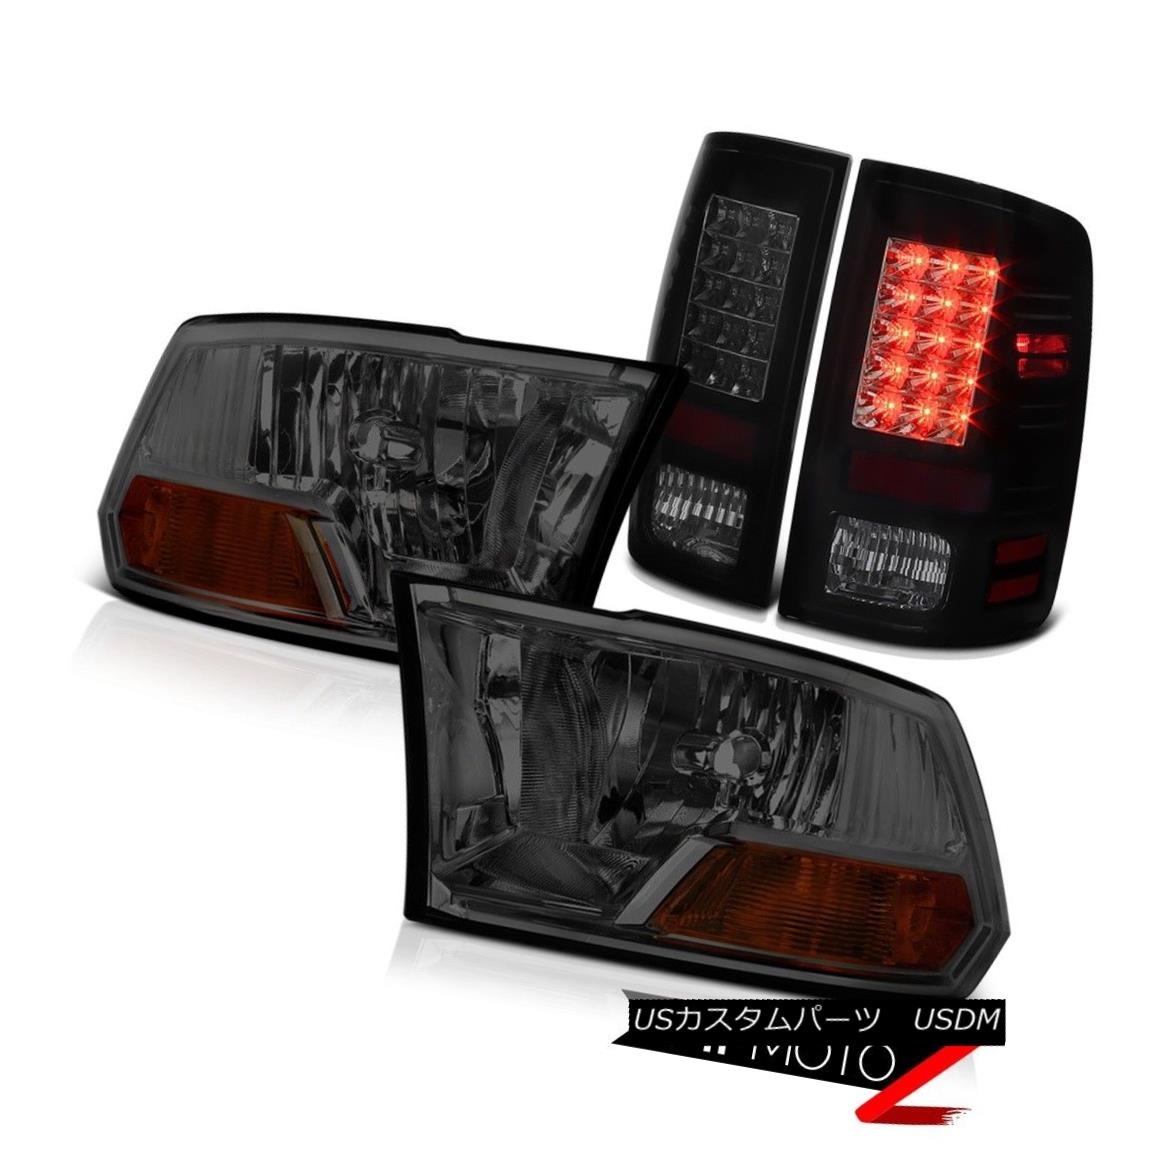 ヘッドライト 09 DARKEST SMOKE LED Tail Lights+Headlights 2009-2018 Dodge Ram 2010 2011-2018 09 DARKEST SMOKE LEDテールライト+ヘッドランプ hts 2009-2018 Dodge Ram 2010 2011-2018